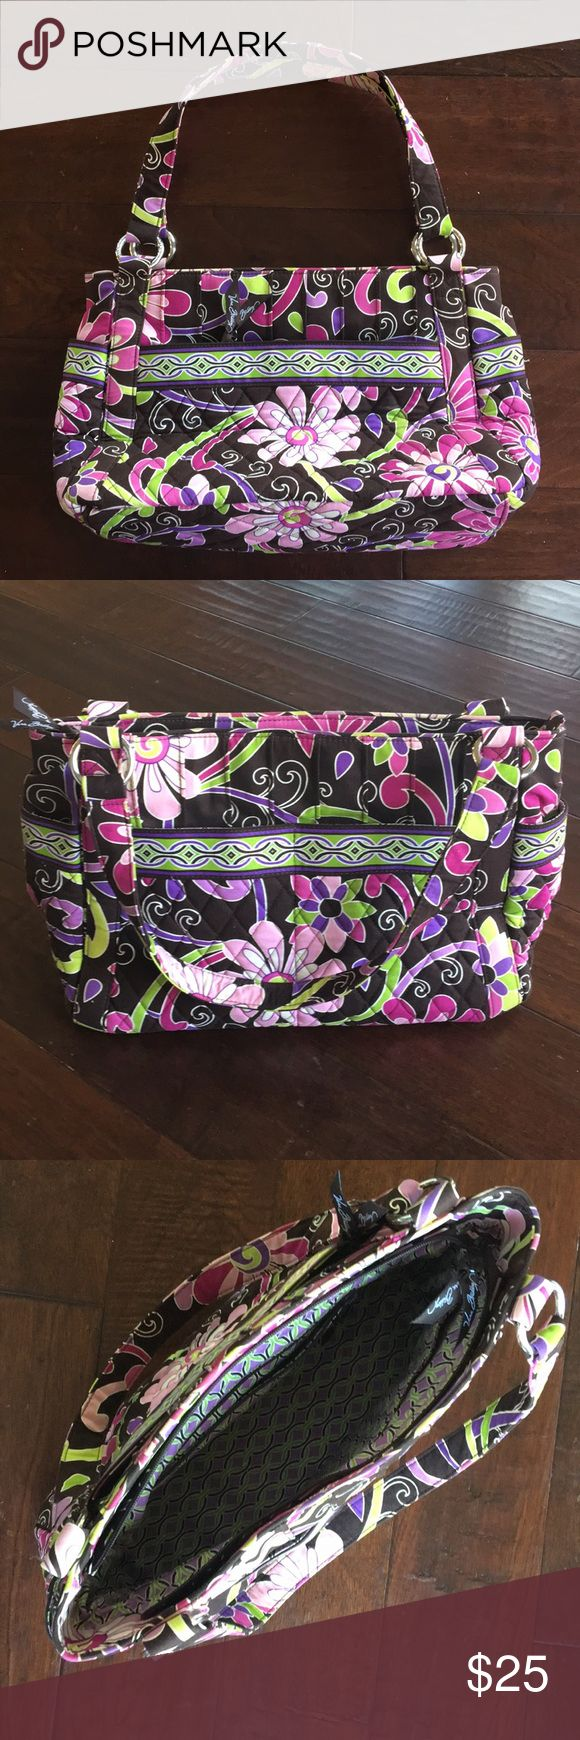 Vera Bradley Tote Bag Like New Vera Bradley Tote Bag. Could be used as diaper bag. 5 outside pockets. 4 inside pockets. Vera Bradley Bags Baby Bags